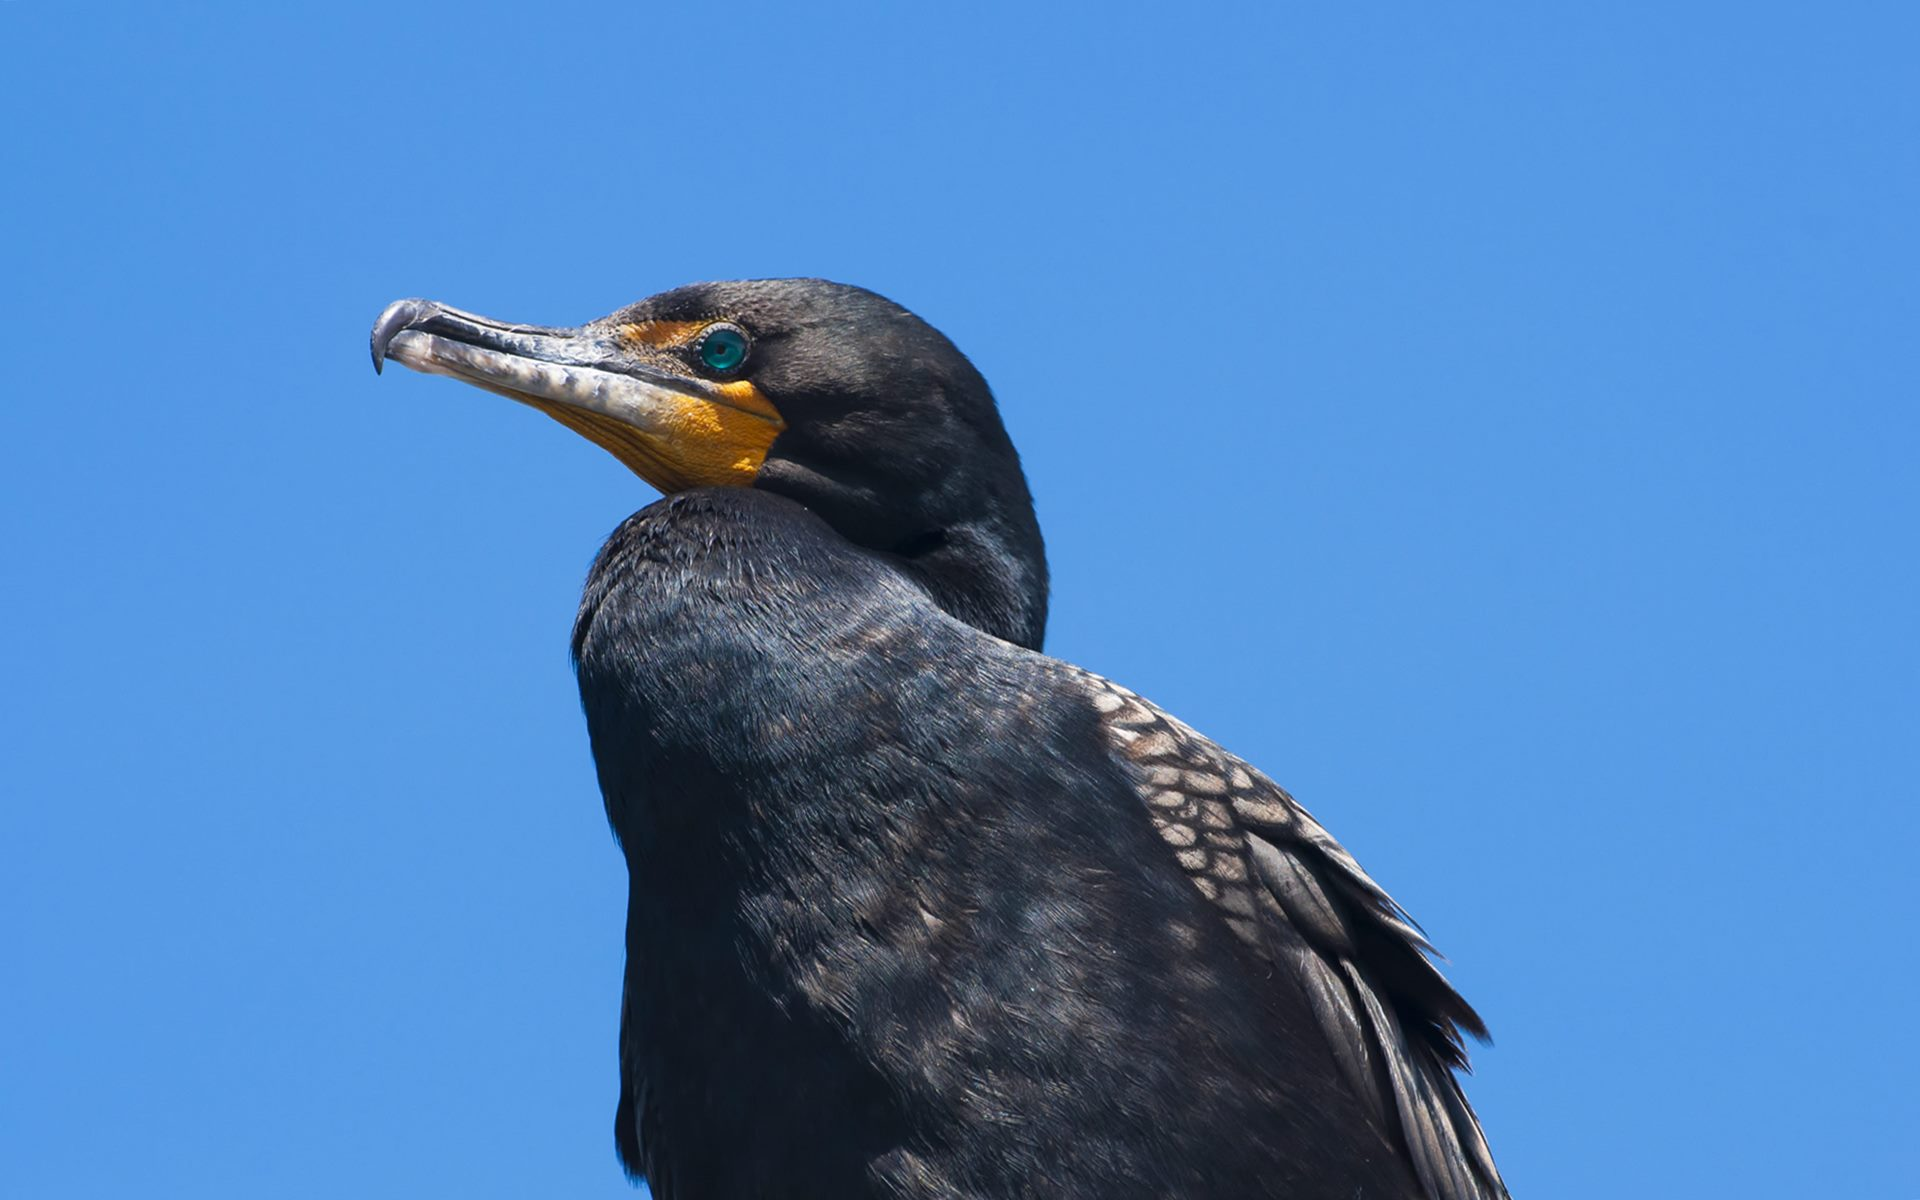 double crested cormorant bird hd wallpaper images picture download